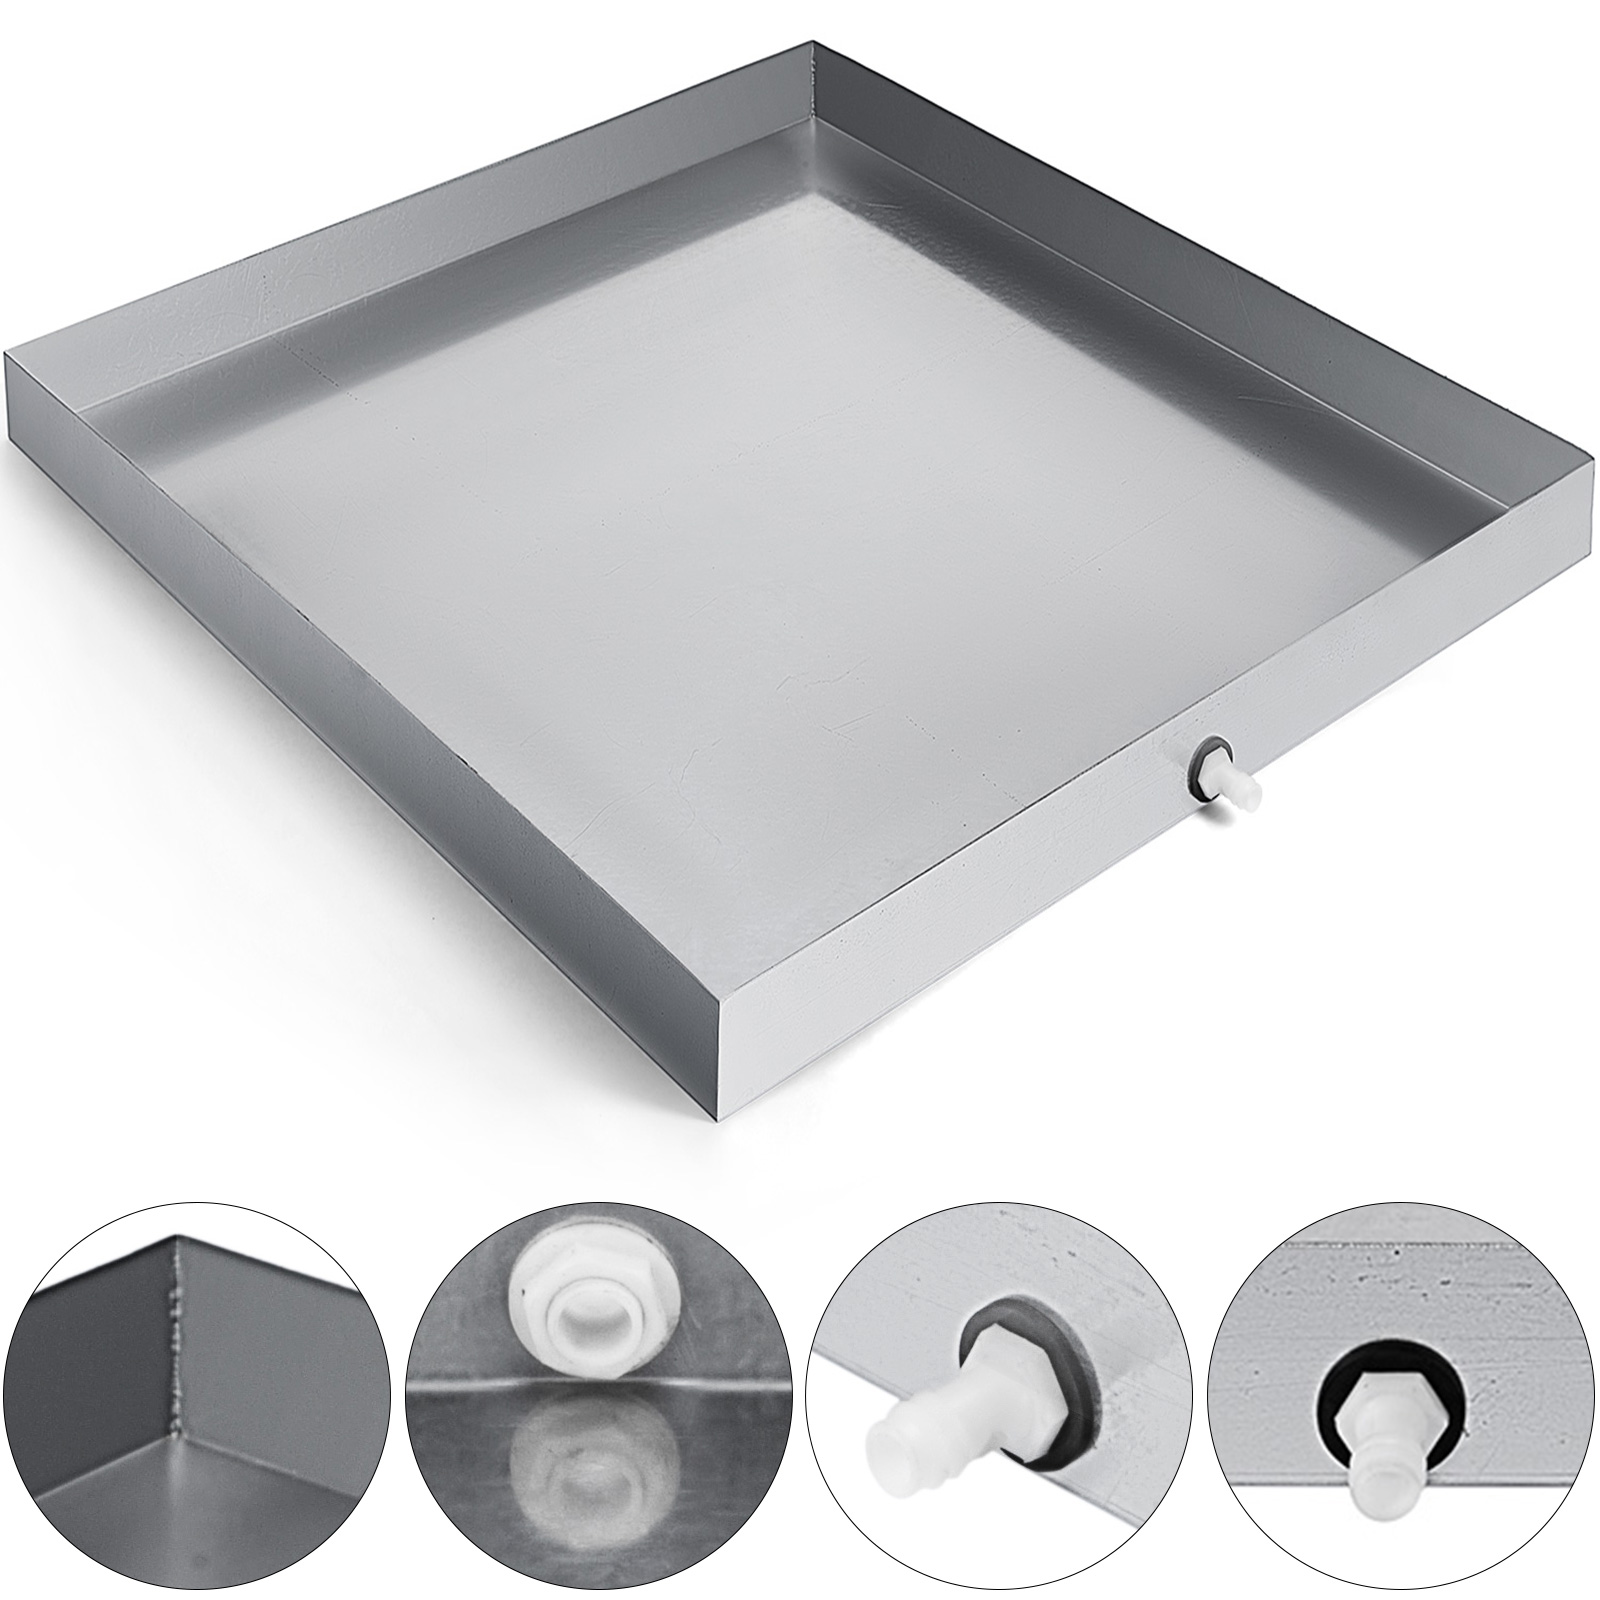 Details About 32 X30 Washing Machine Pan Under Washer Tray Drip Drain Floor Overflow Catch